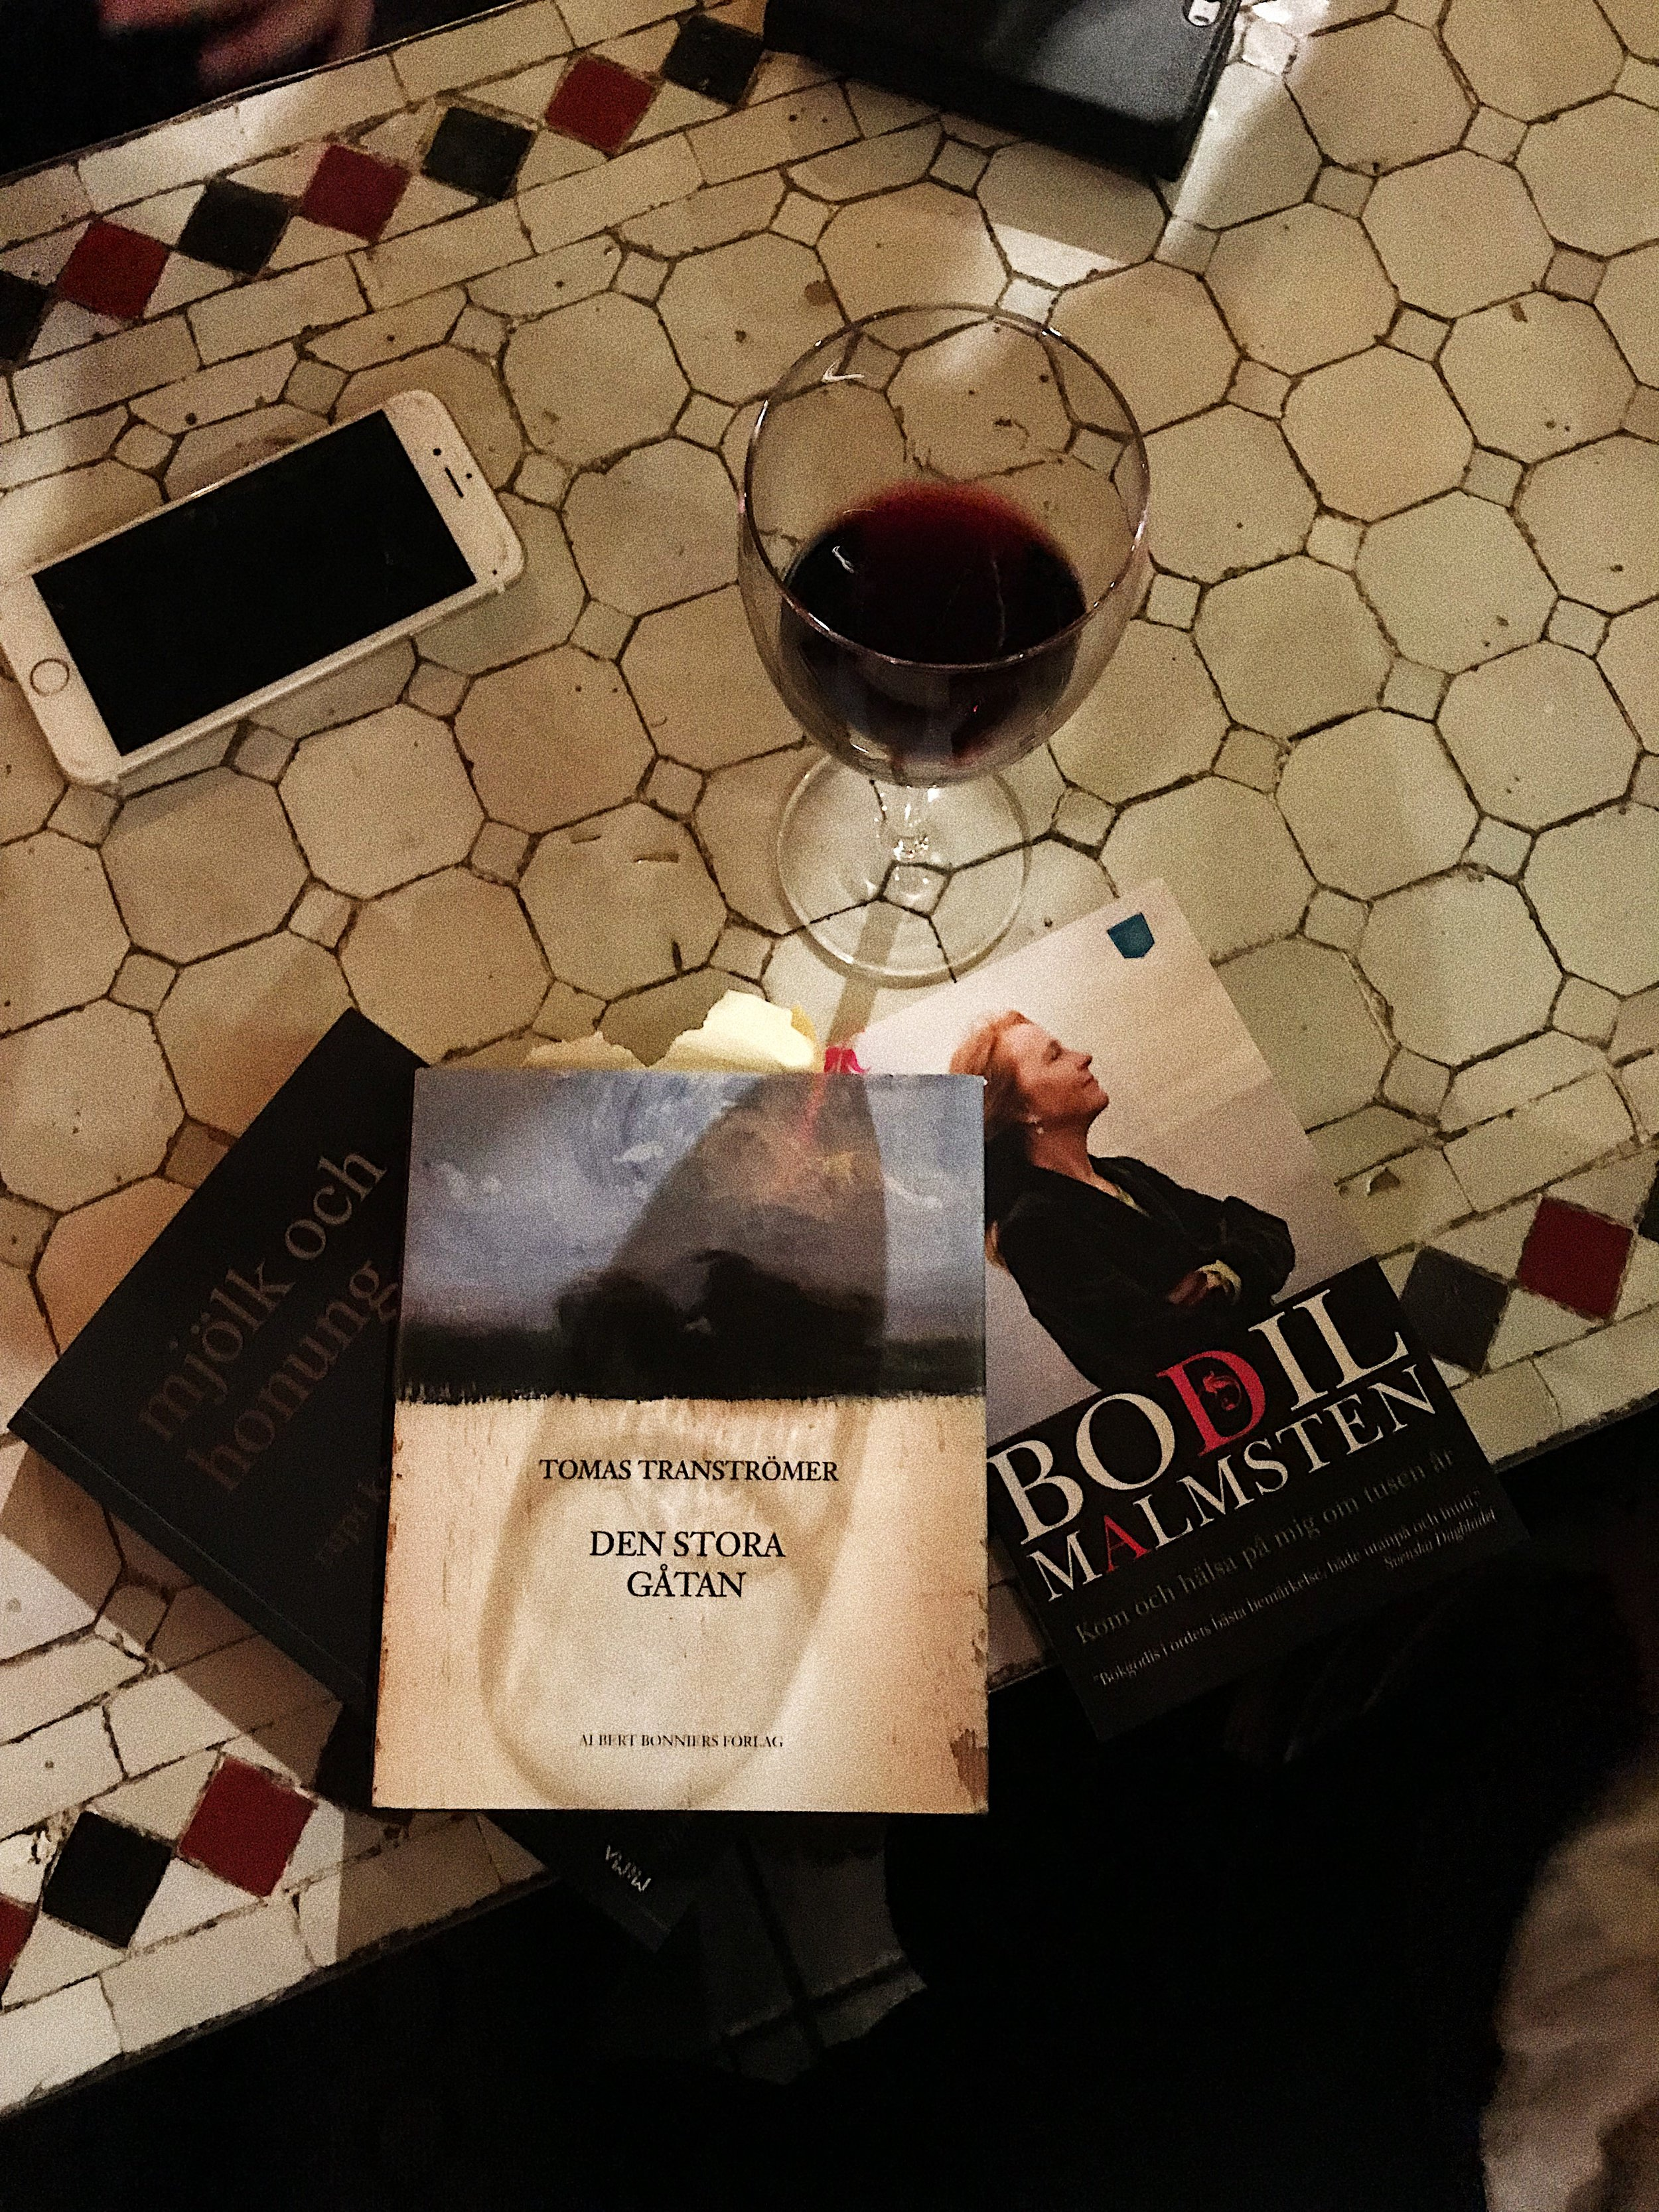 First official book club evening last Thursday.